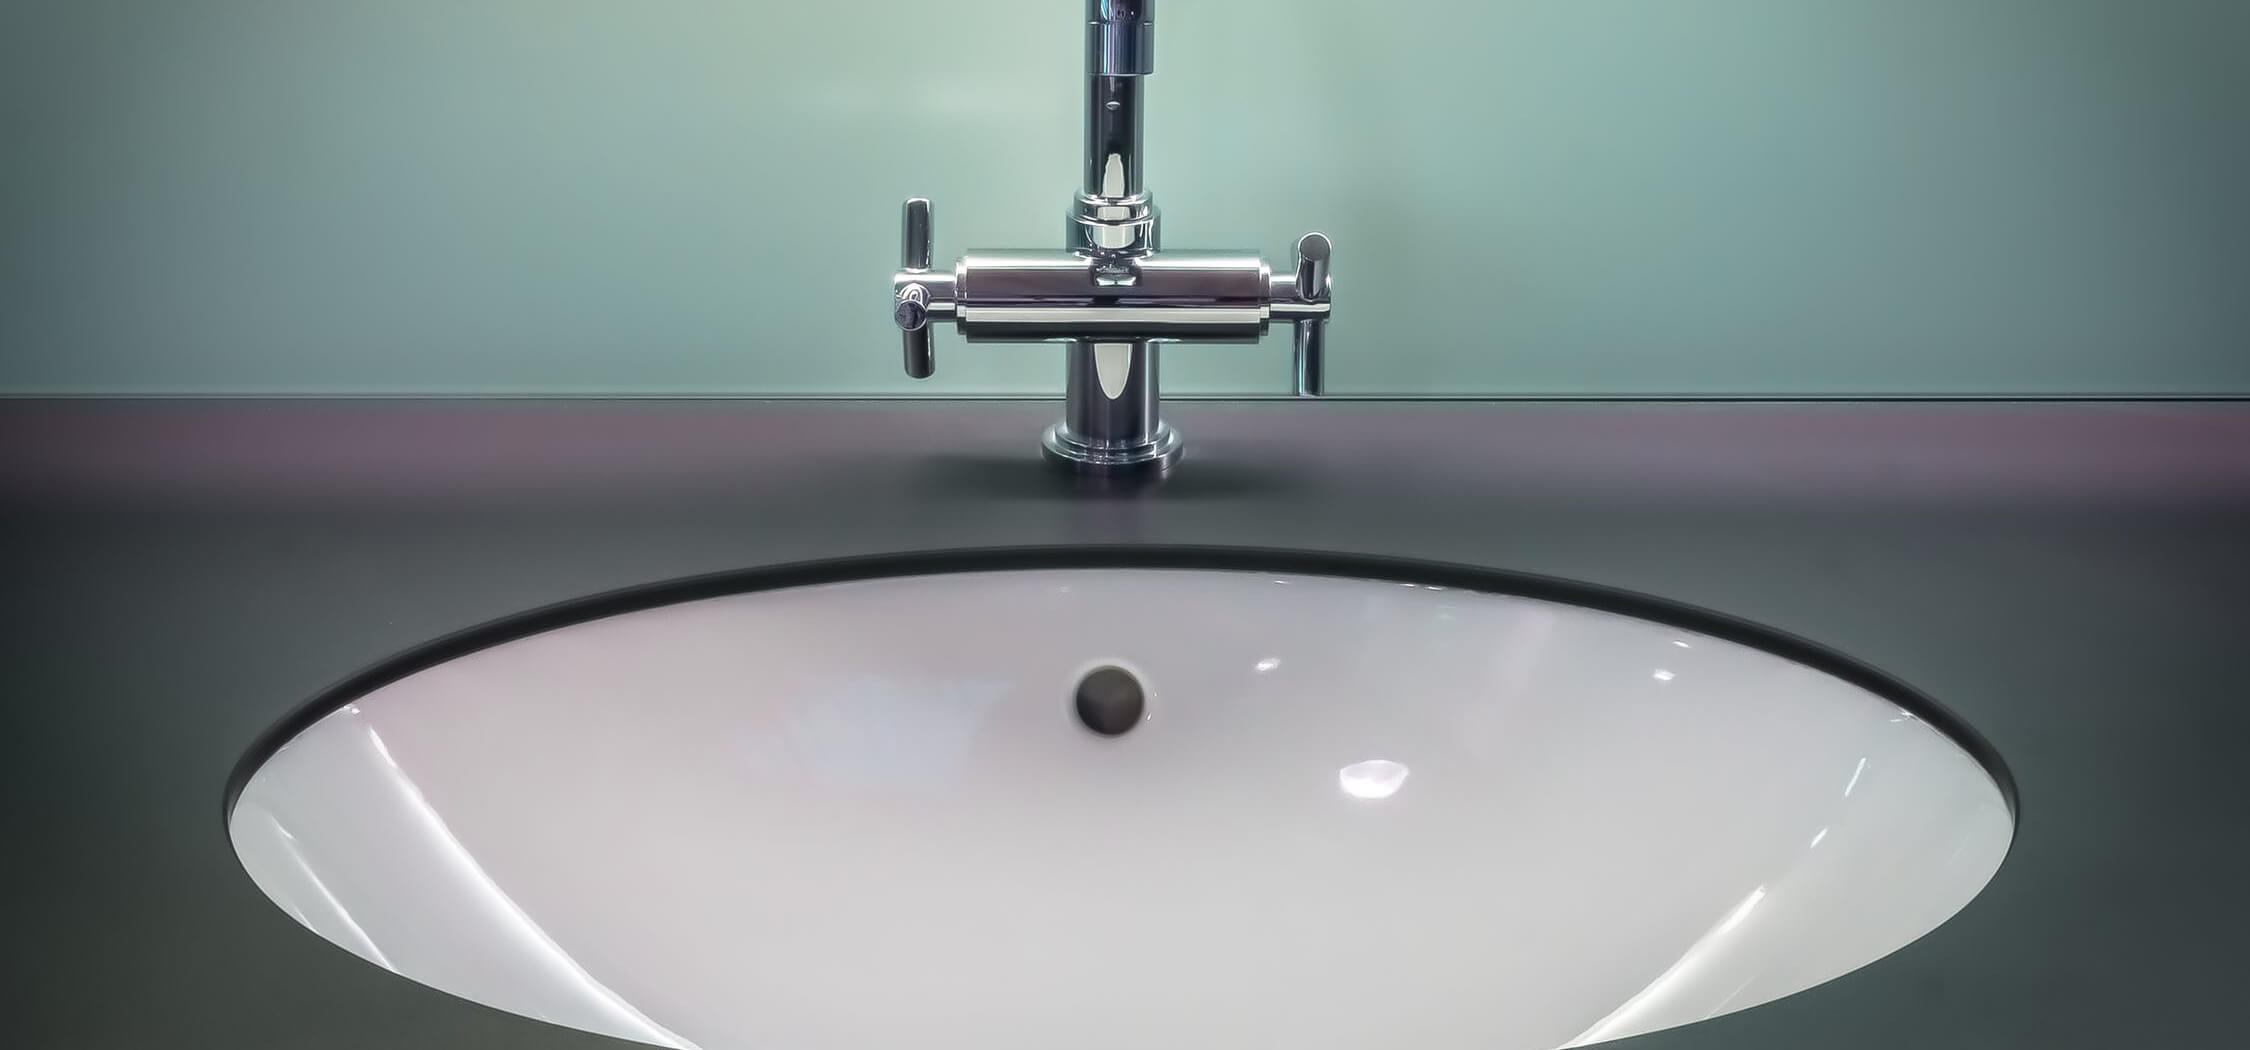 how-to-update-your-bathroom-on-the-cheap by-resurfacing-3.jpeg